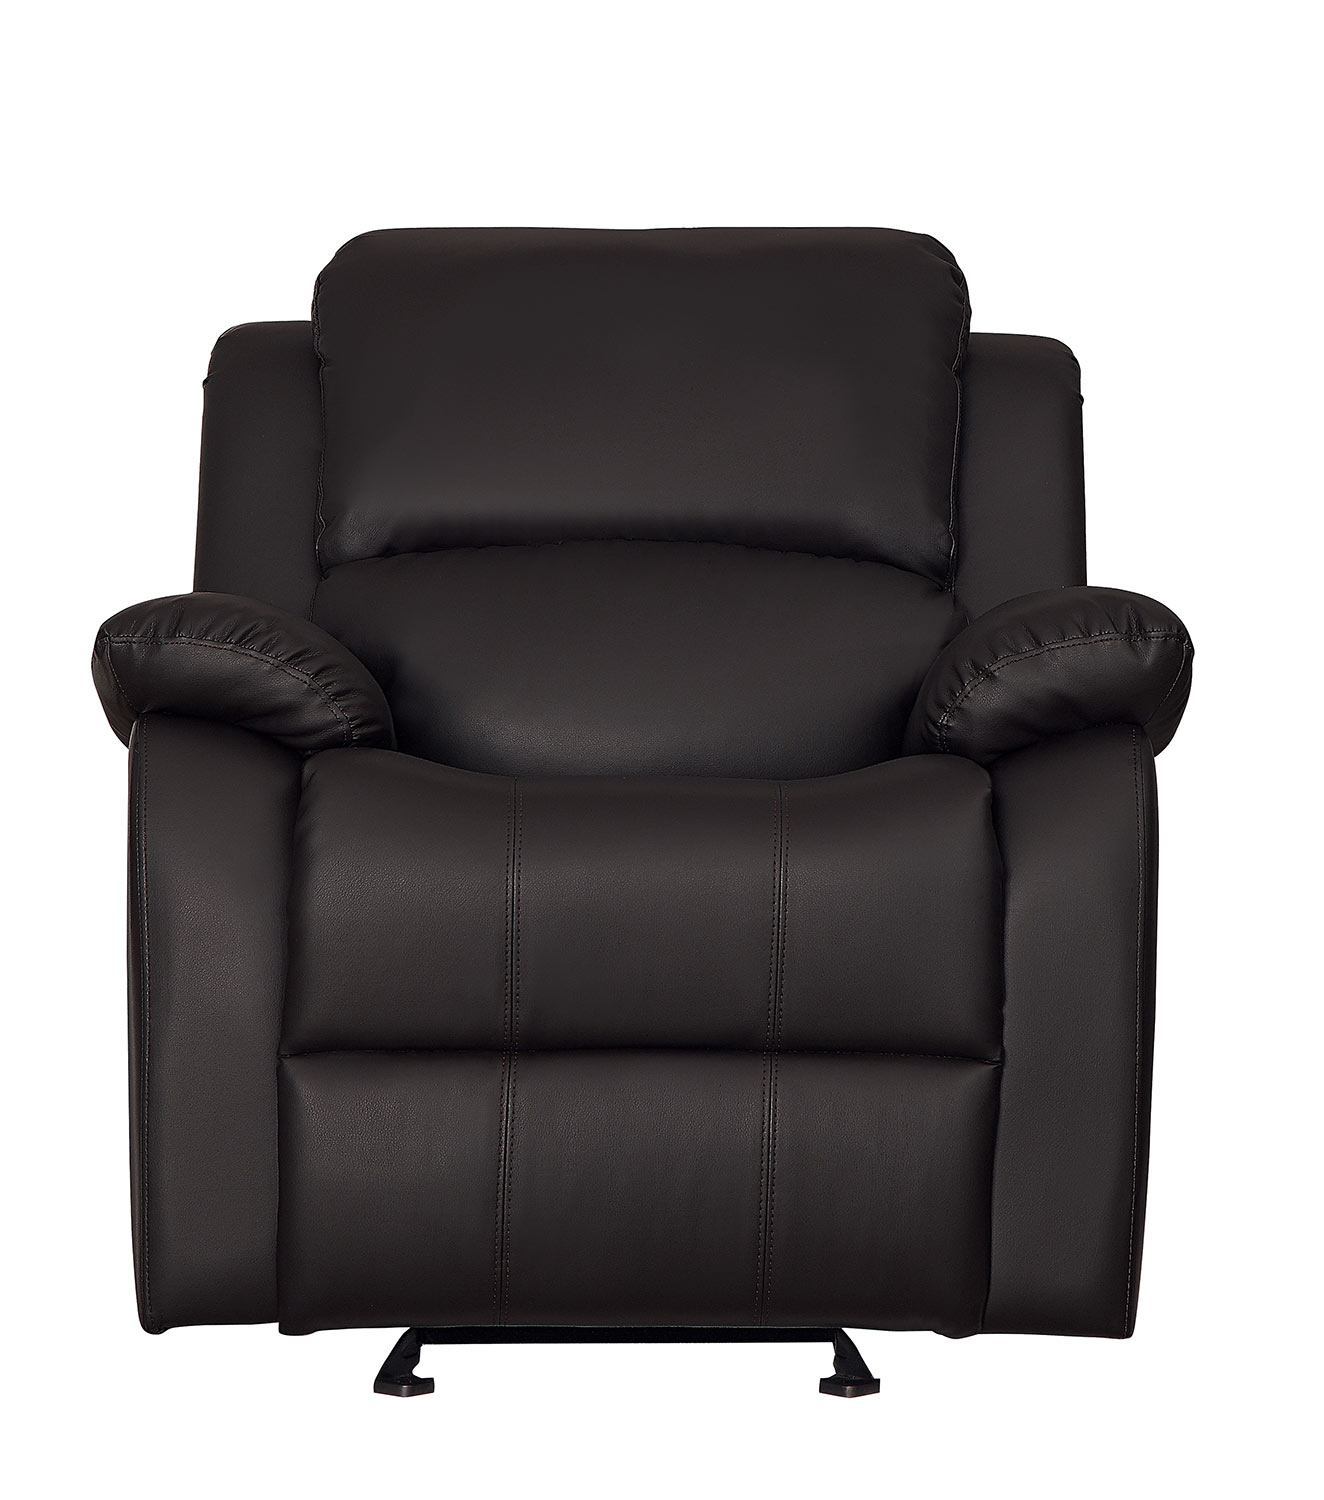 Homelegance Clarkdale Glider Reclining Chair - Dark Brown - Dark brown bi-cast vinyl